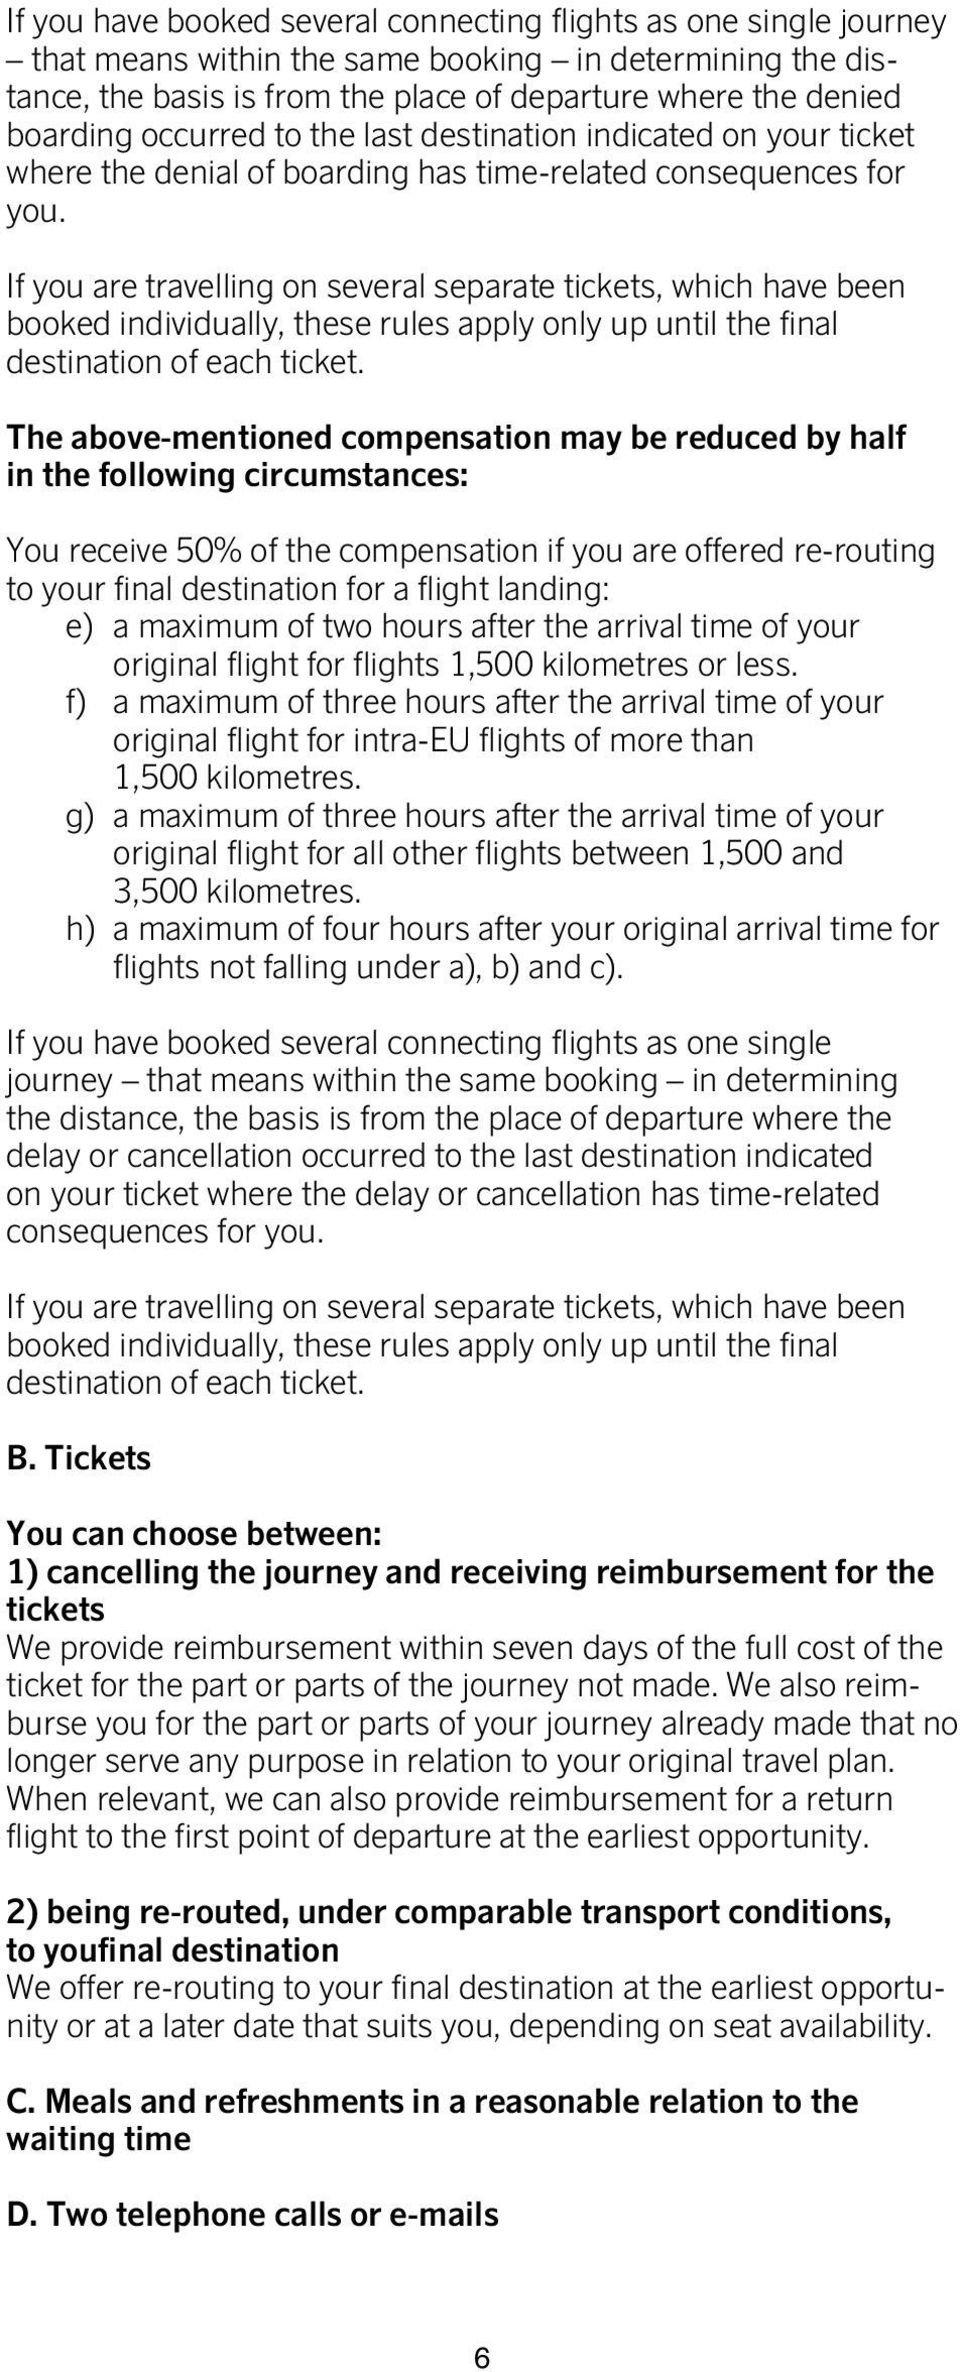 If you are travelling on several separate tickets, which have been booked individually, these rules apply only up until the final destination of each ticket.